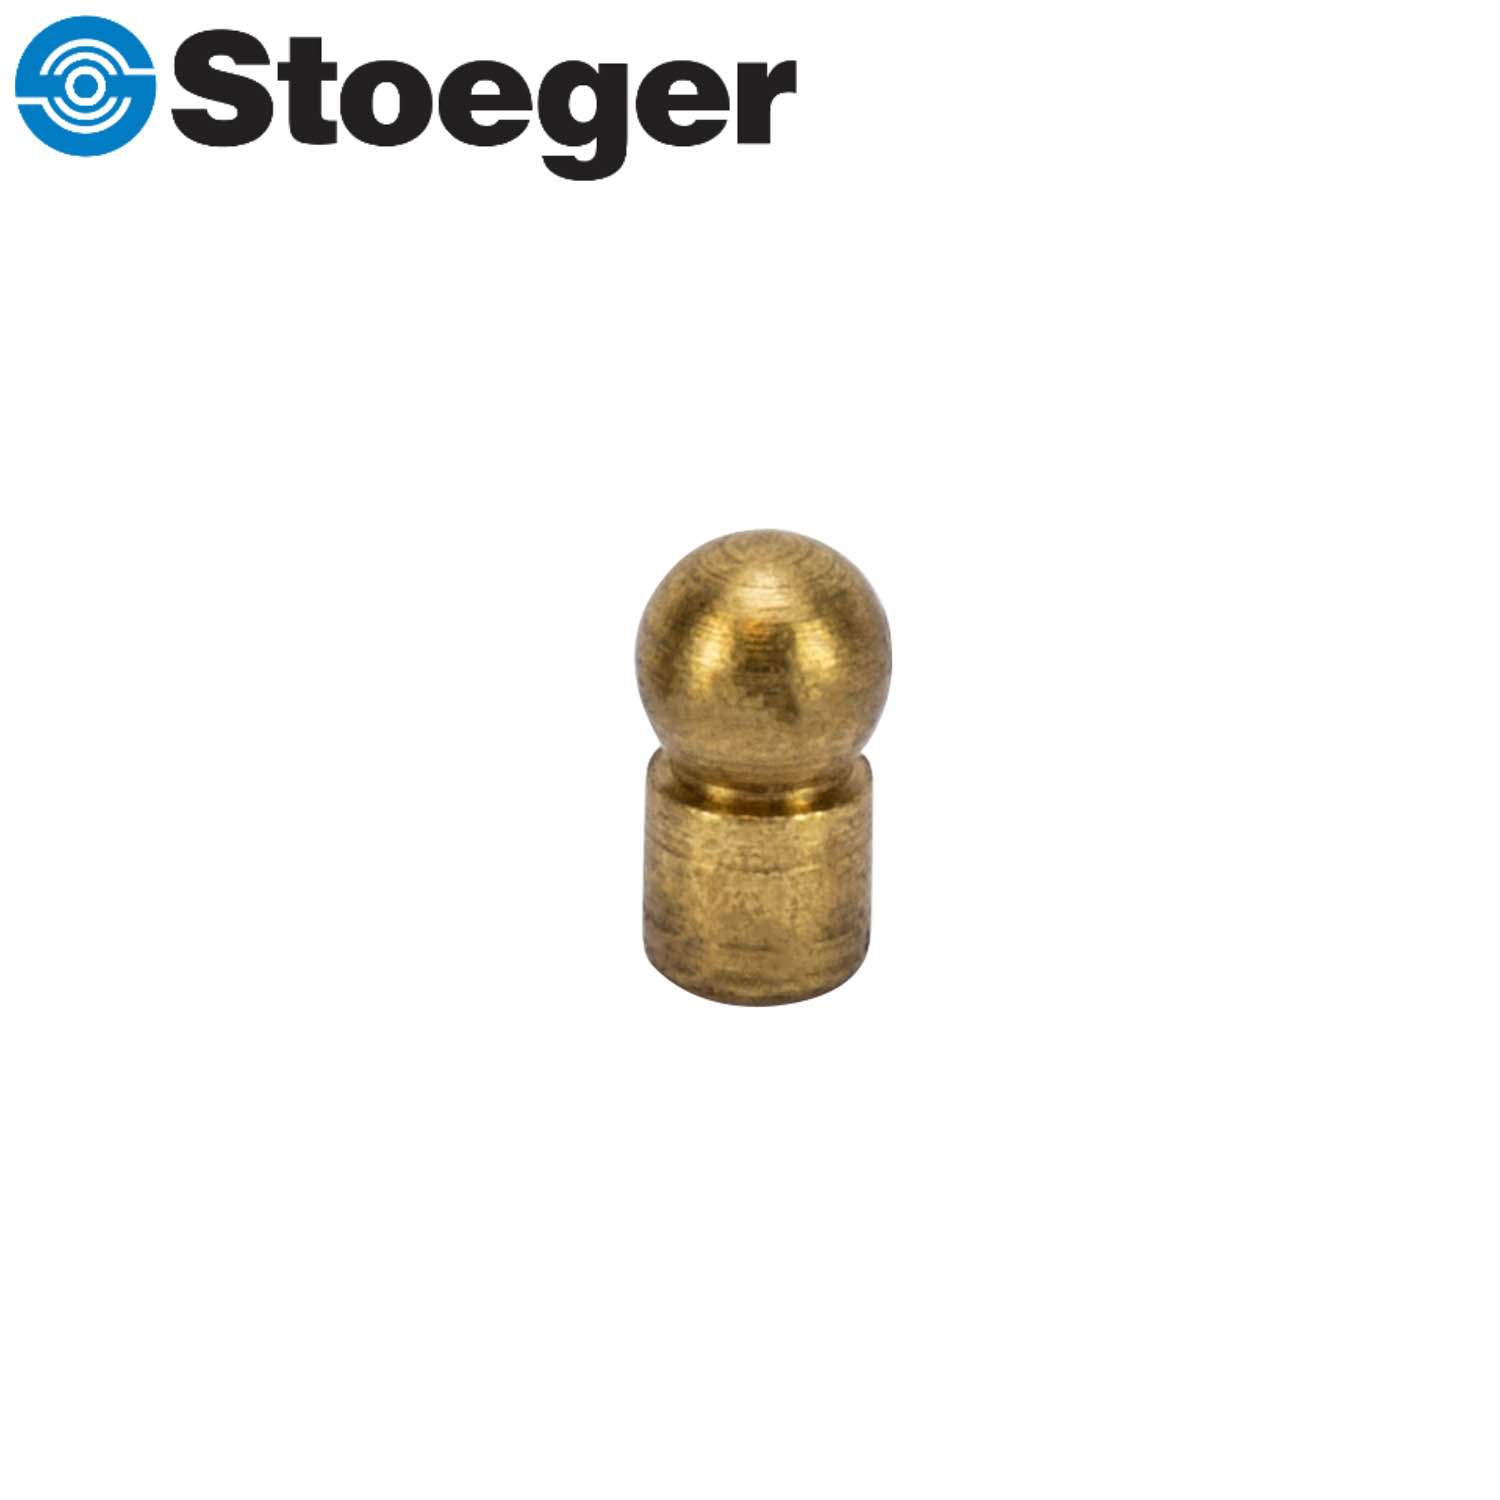 Stoeger Over Under Front Sight Bead: Midwest Gun Works